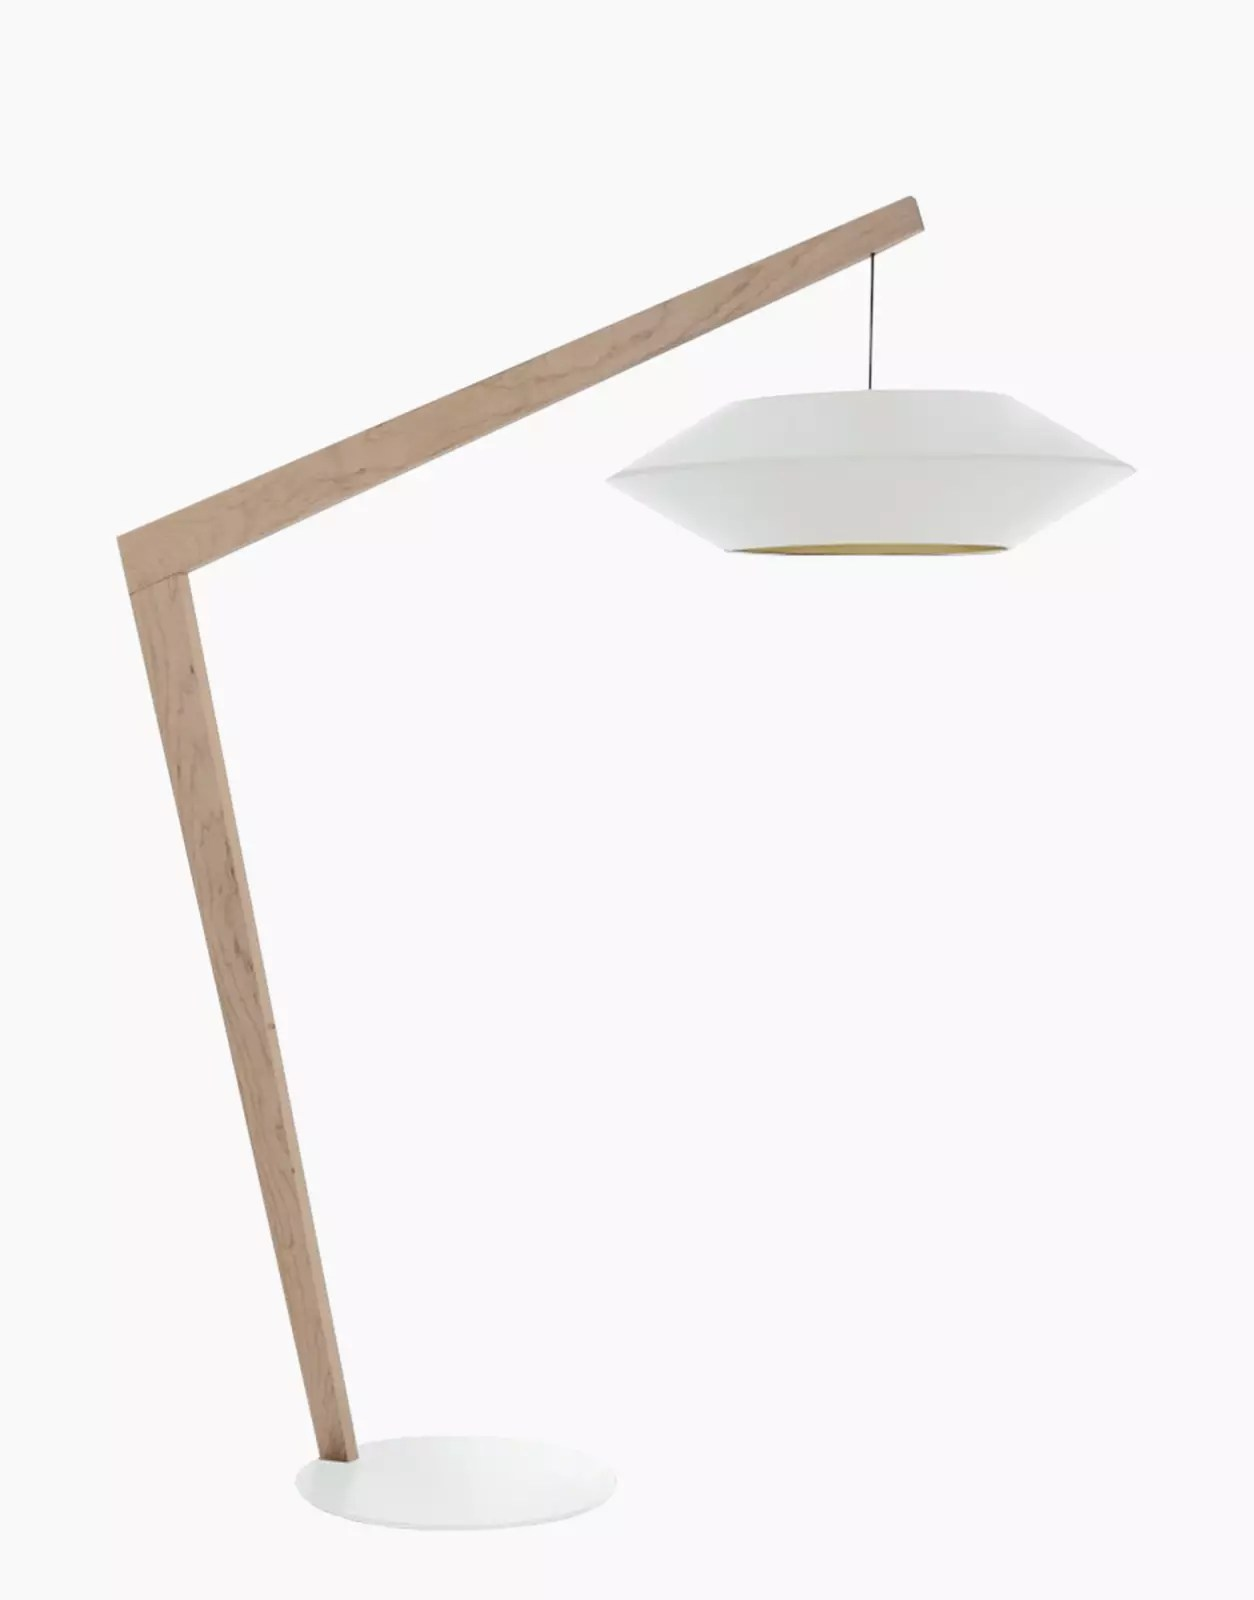 Design Küchenlampe White Floor Lamp Lmp Ovni - Solution-design.fr - Furniture - Lighting - Decoration